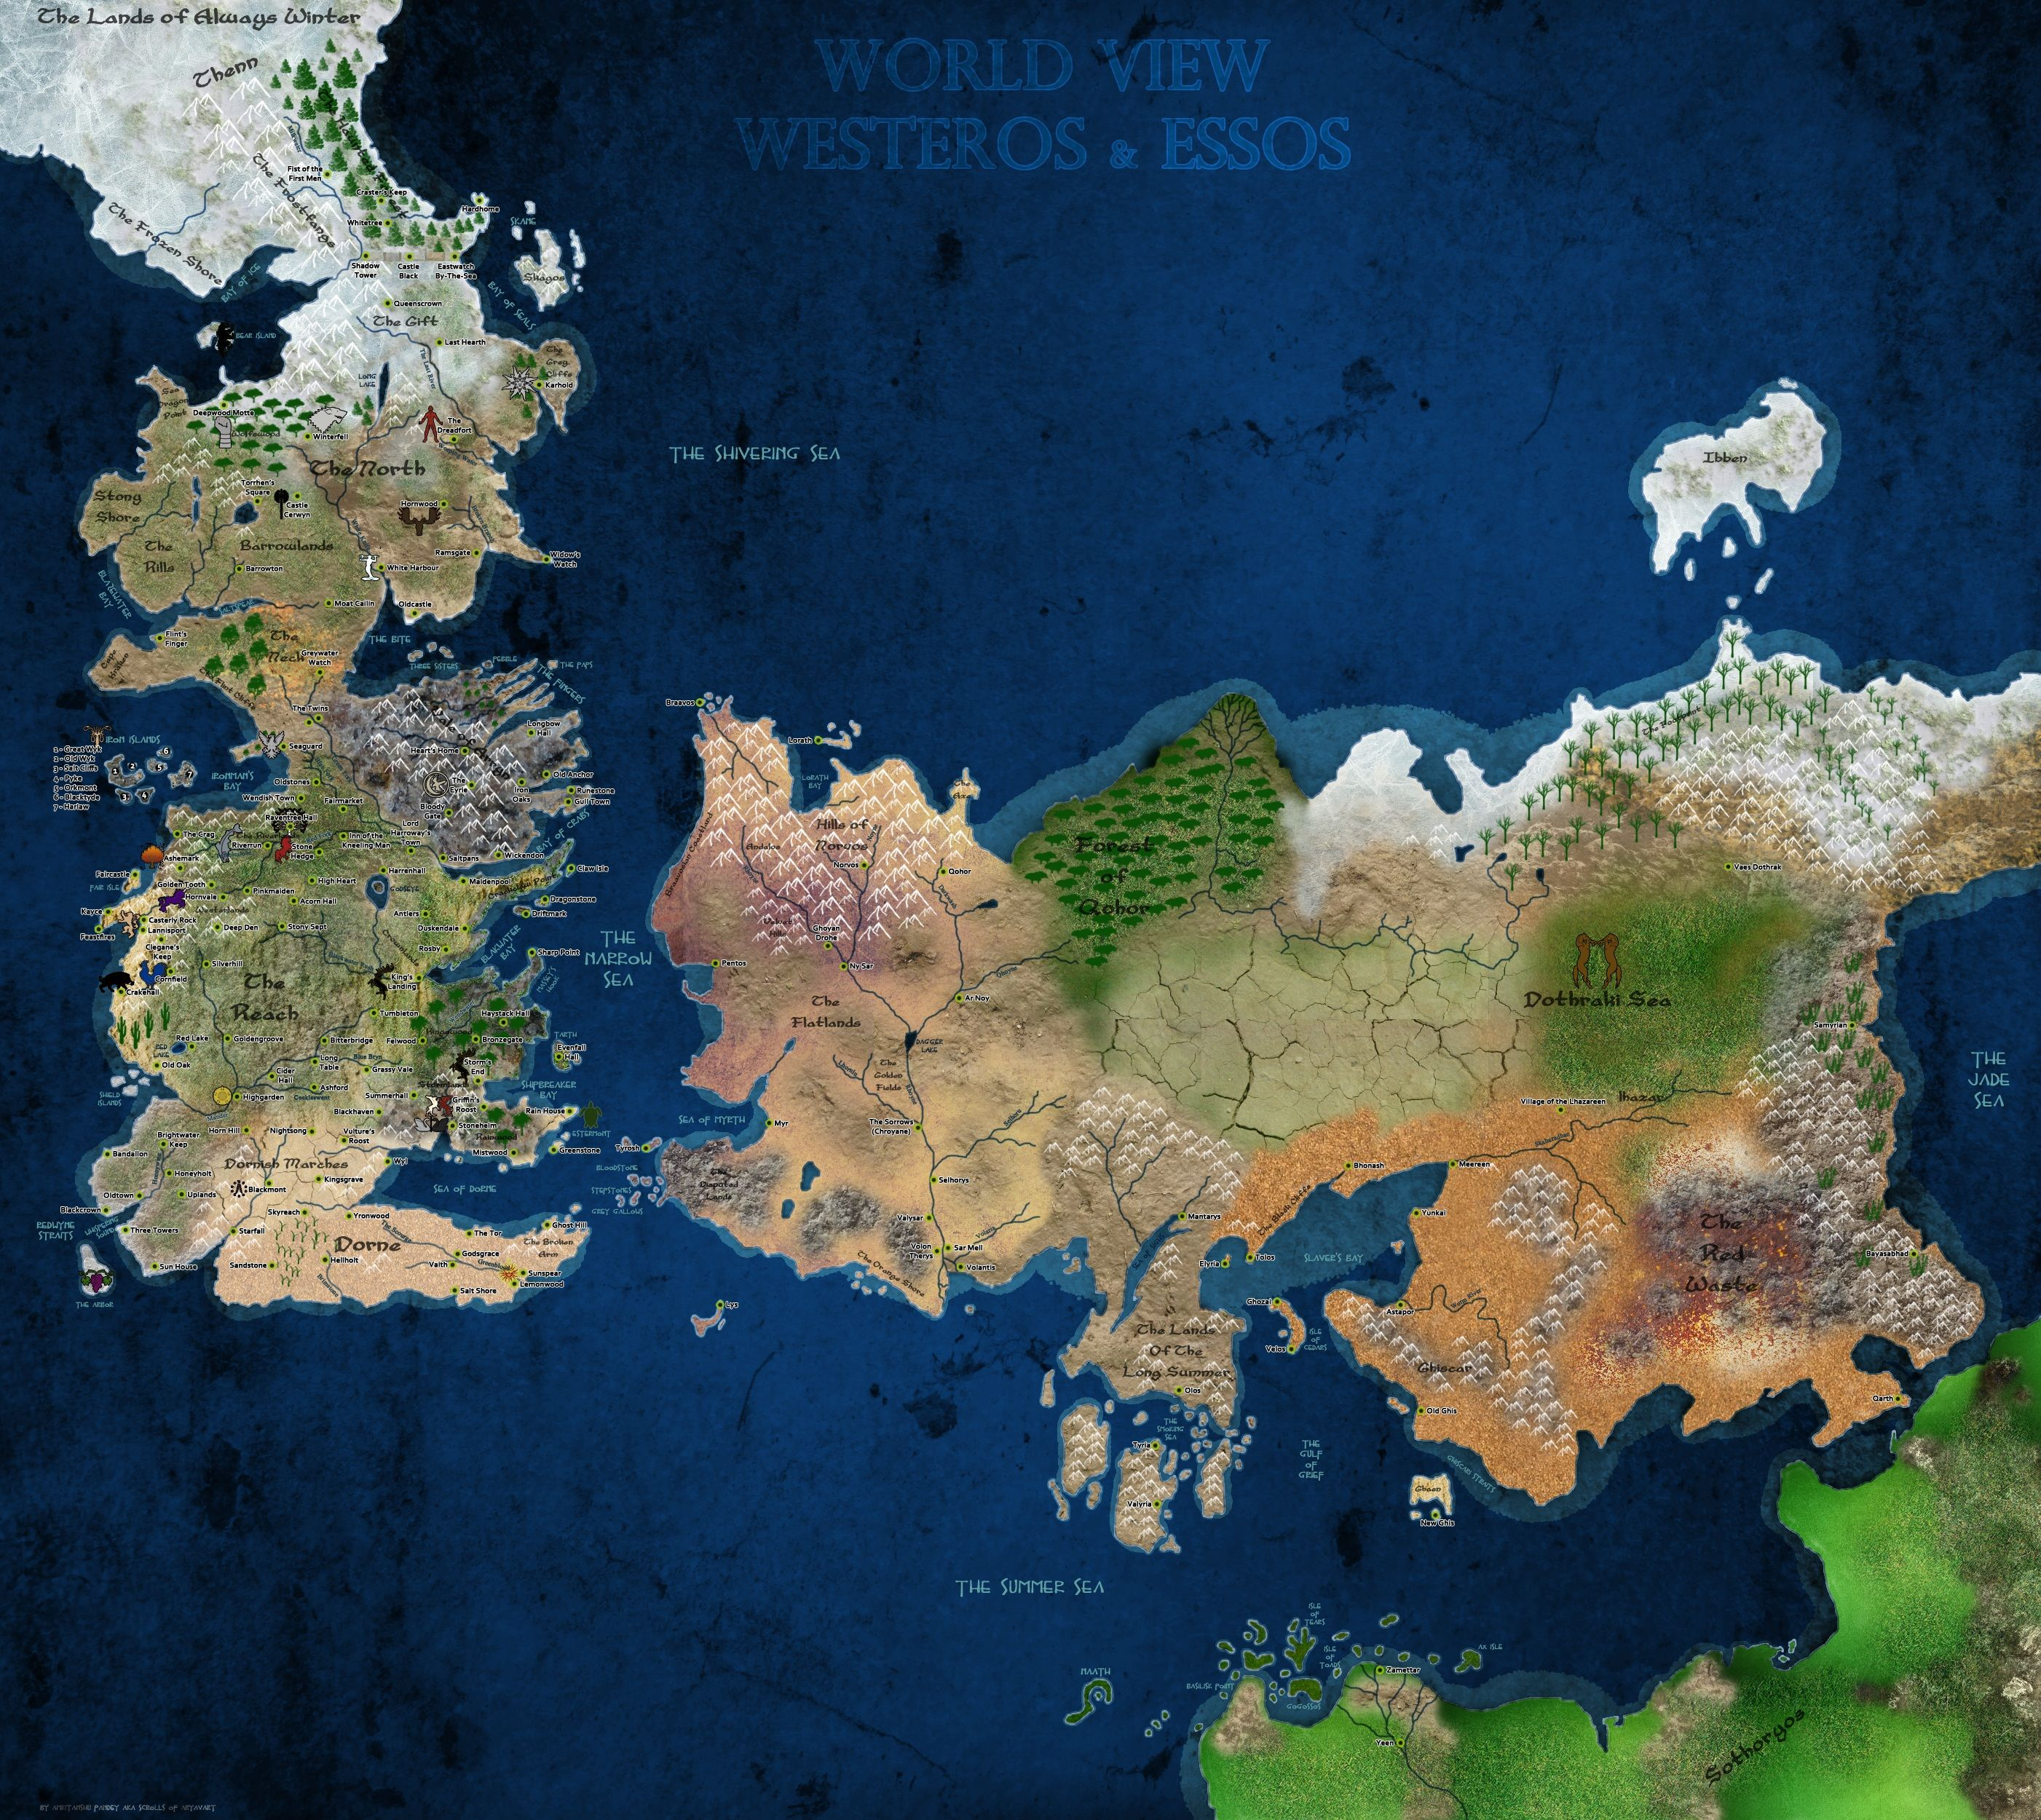 Best game of thrones map ive seen so far random pinterest game of thrones world view westeros essos map fabric poster decor 62 gumiabroncs Image collections